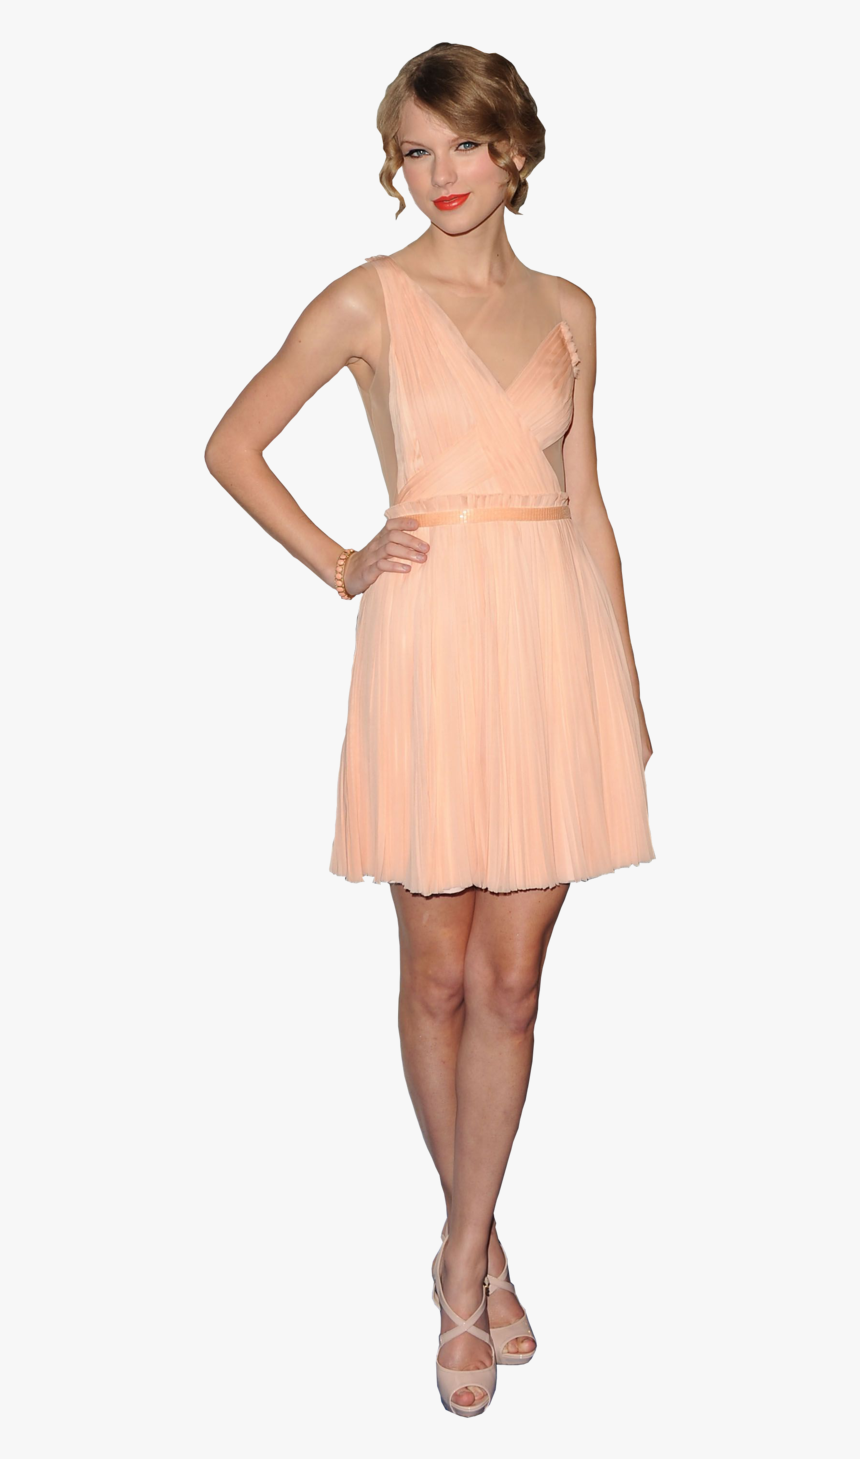 Taylor Swift Full Body Png - Transparent Taylor Swift Full Body, Png Download, Free Download